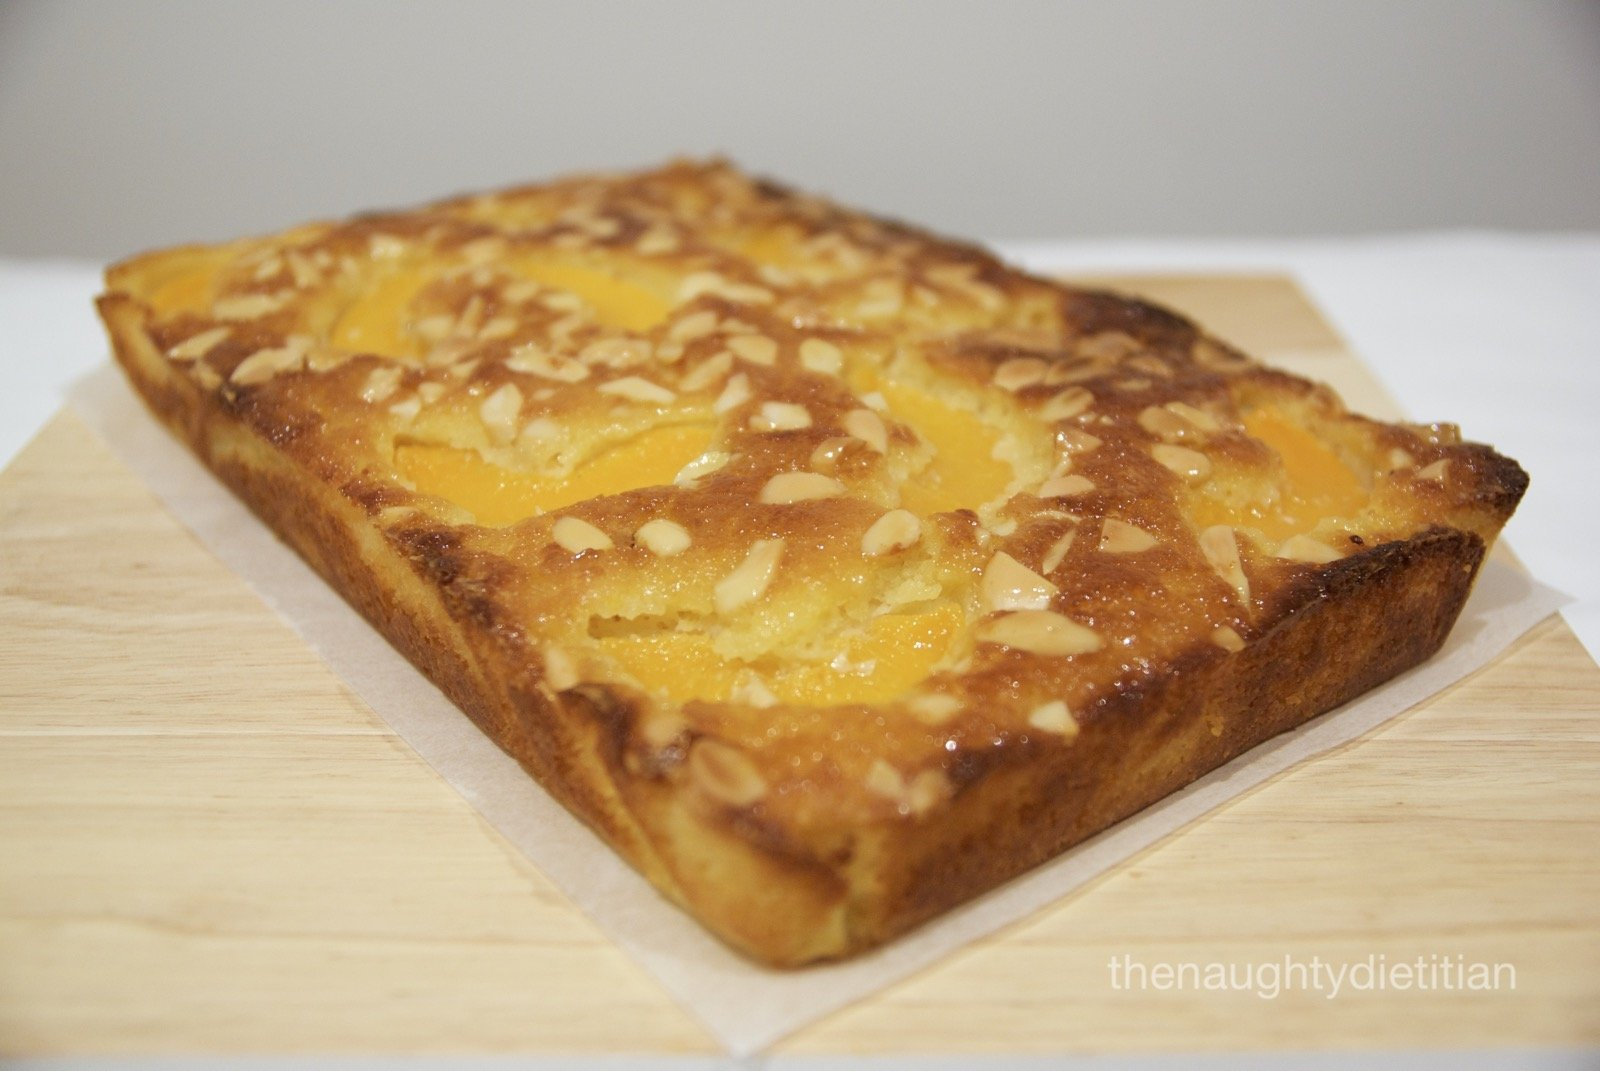 Peach and Almond Tea Cake Gluten Free